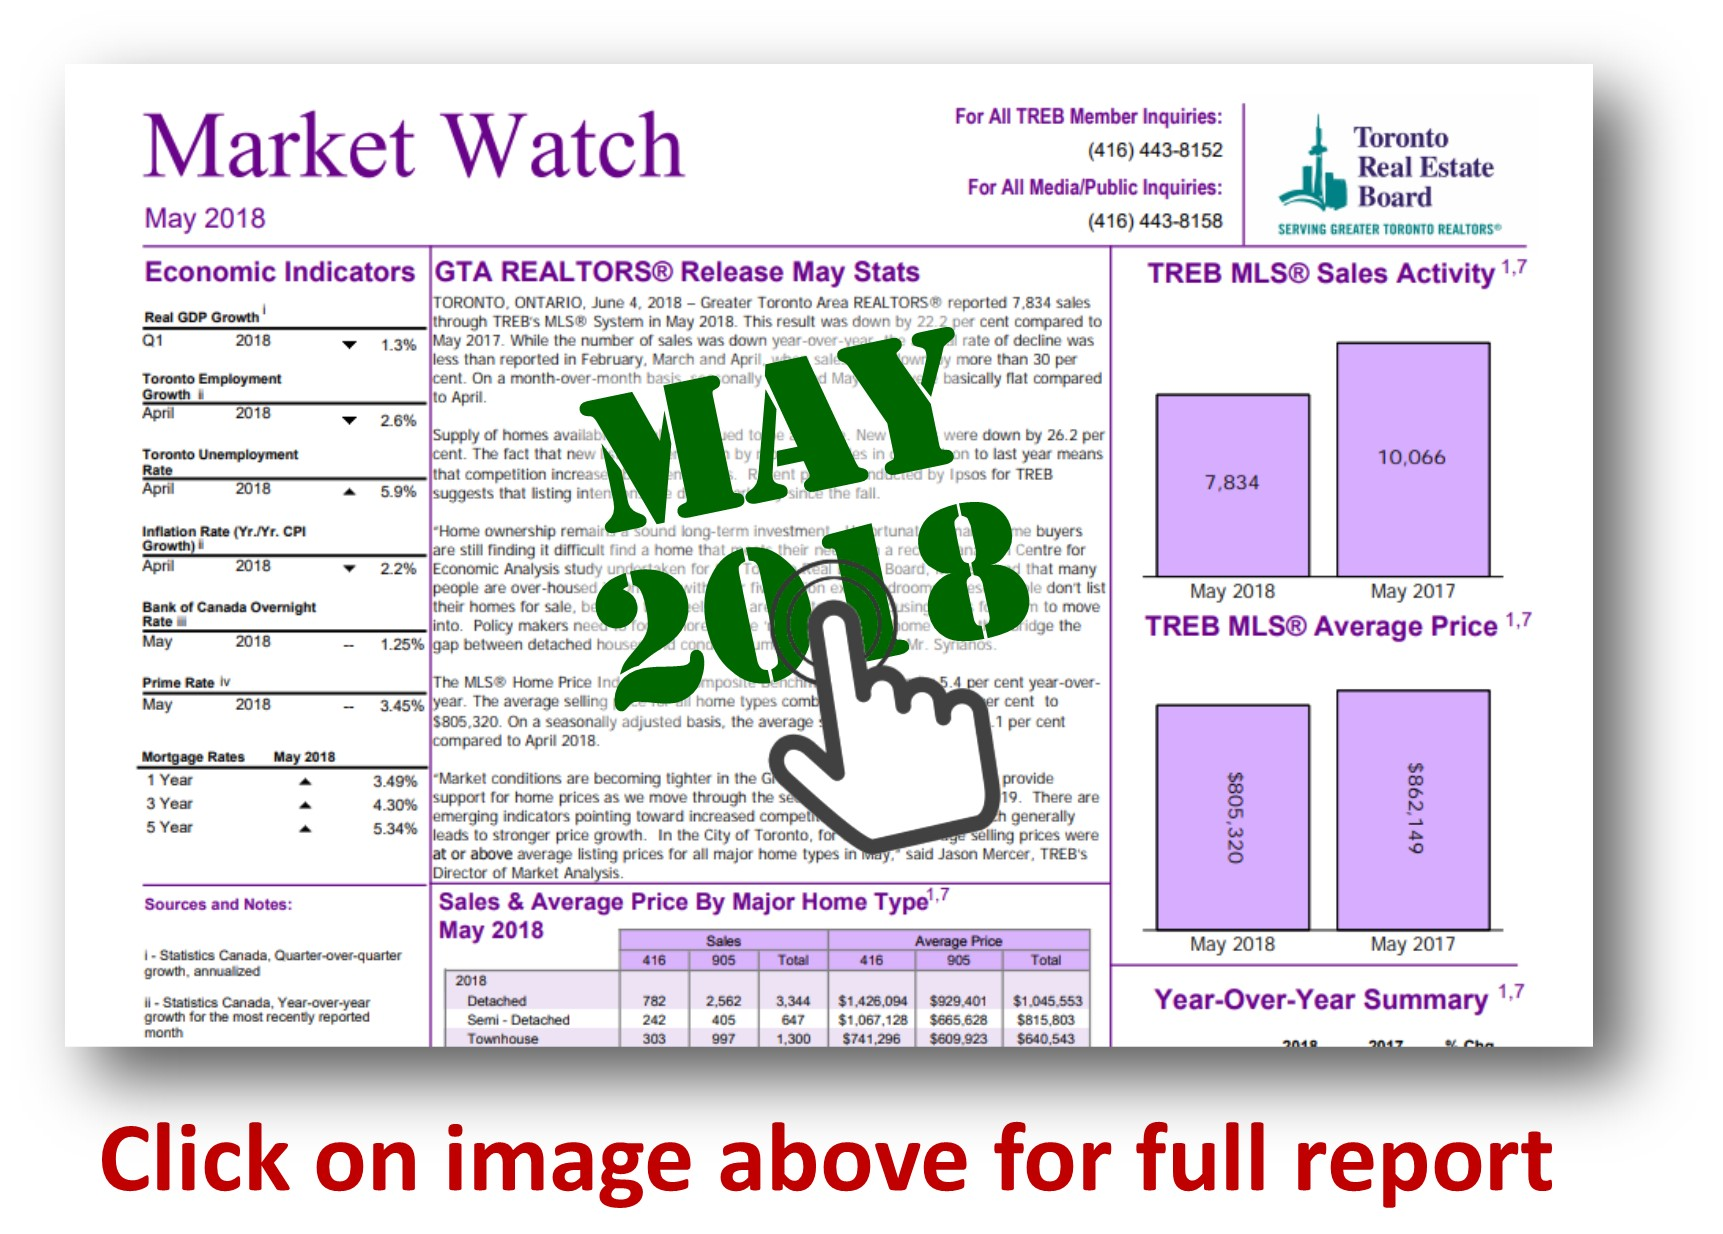 TREB MW FRONT PAGE May 2018.jpg